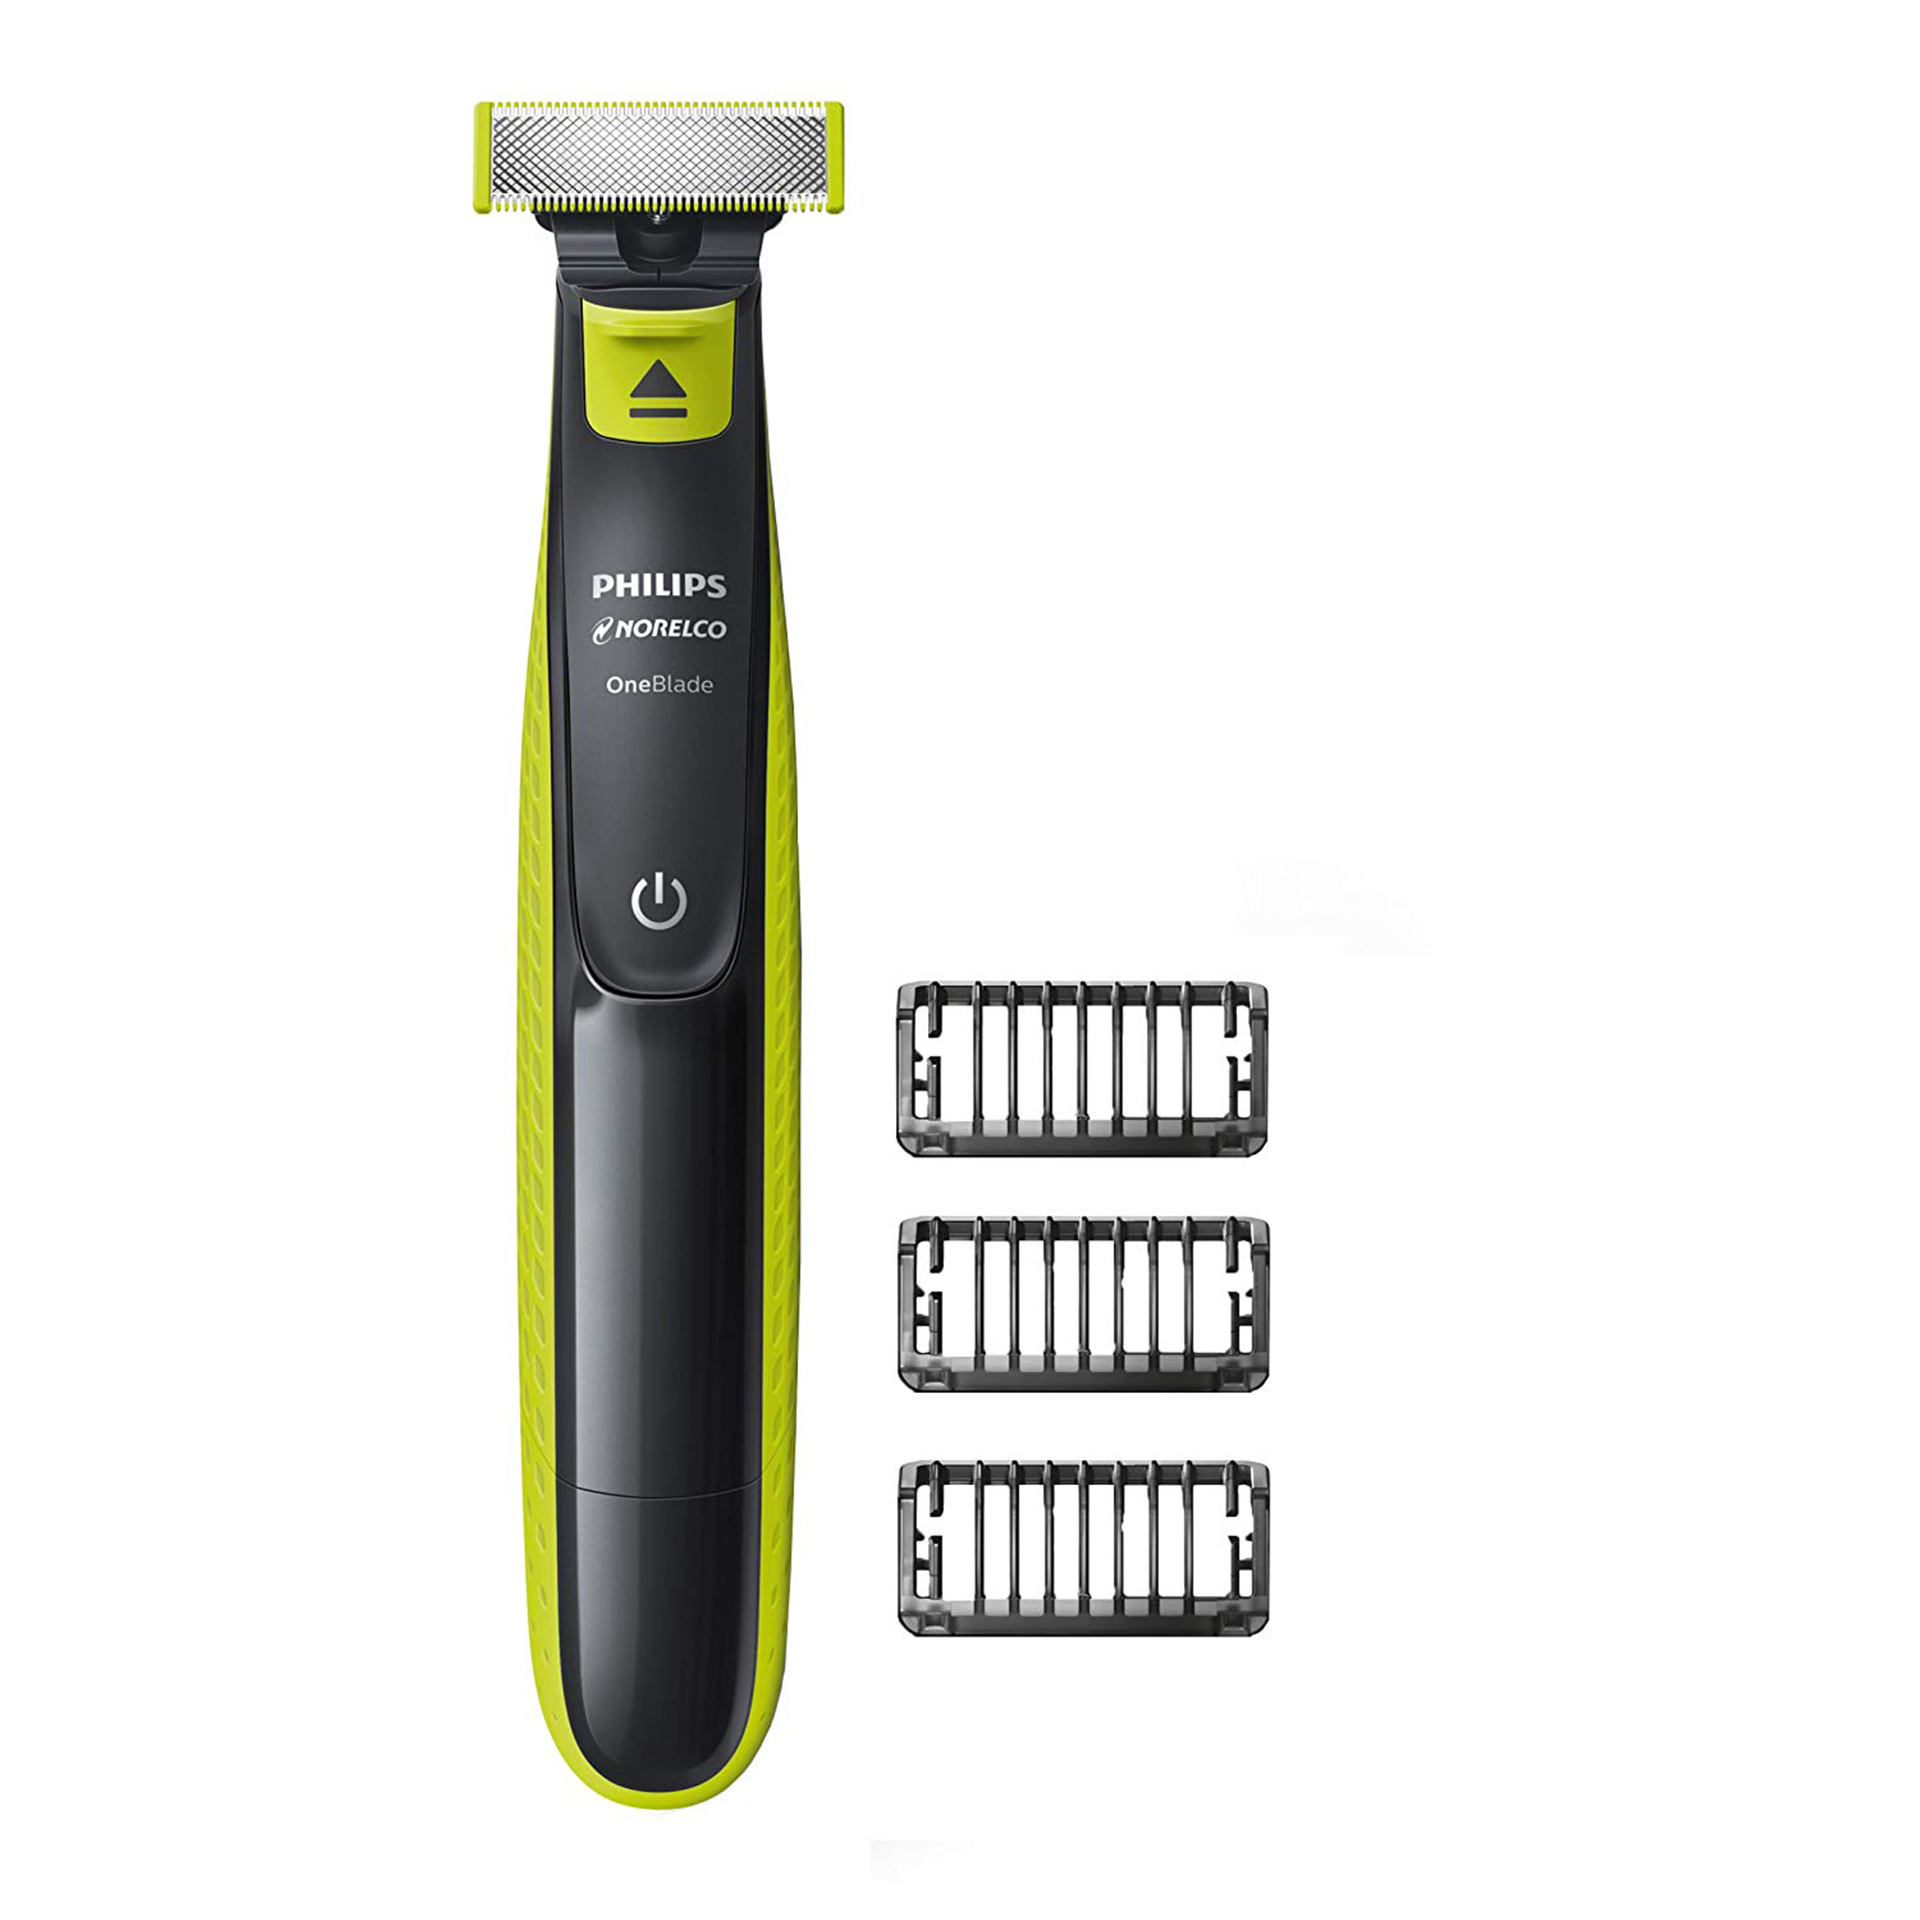 Philips Norelco OneBlade hybrid electric trimmer and shaver -